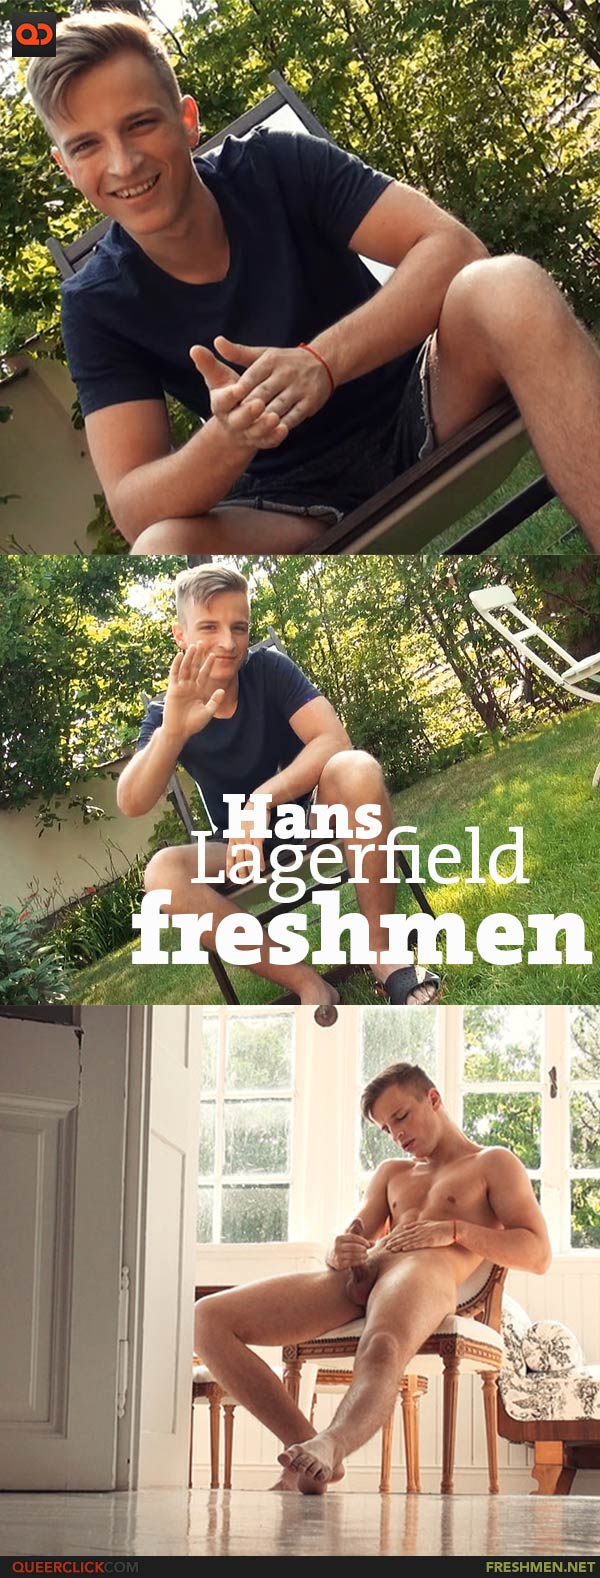 Freshmen: Hans Lagerfield - VALENTINE'S DAY SAVINGS - LIMITED TIME OFFER!